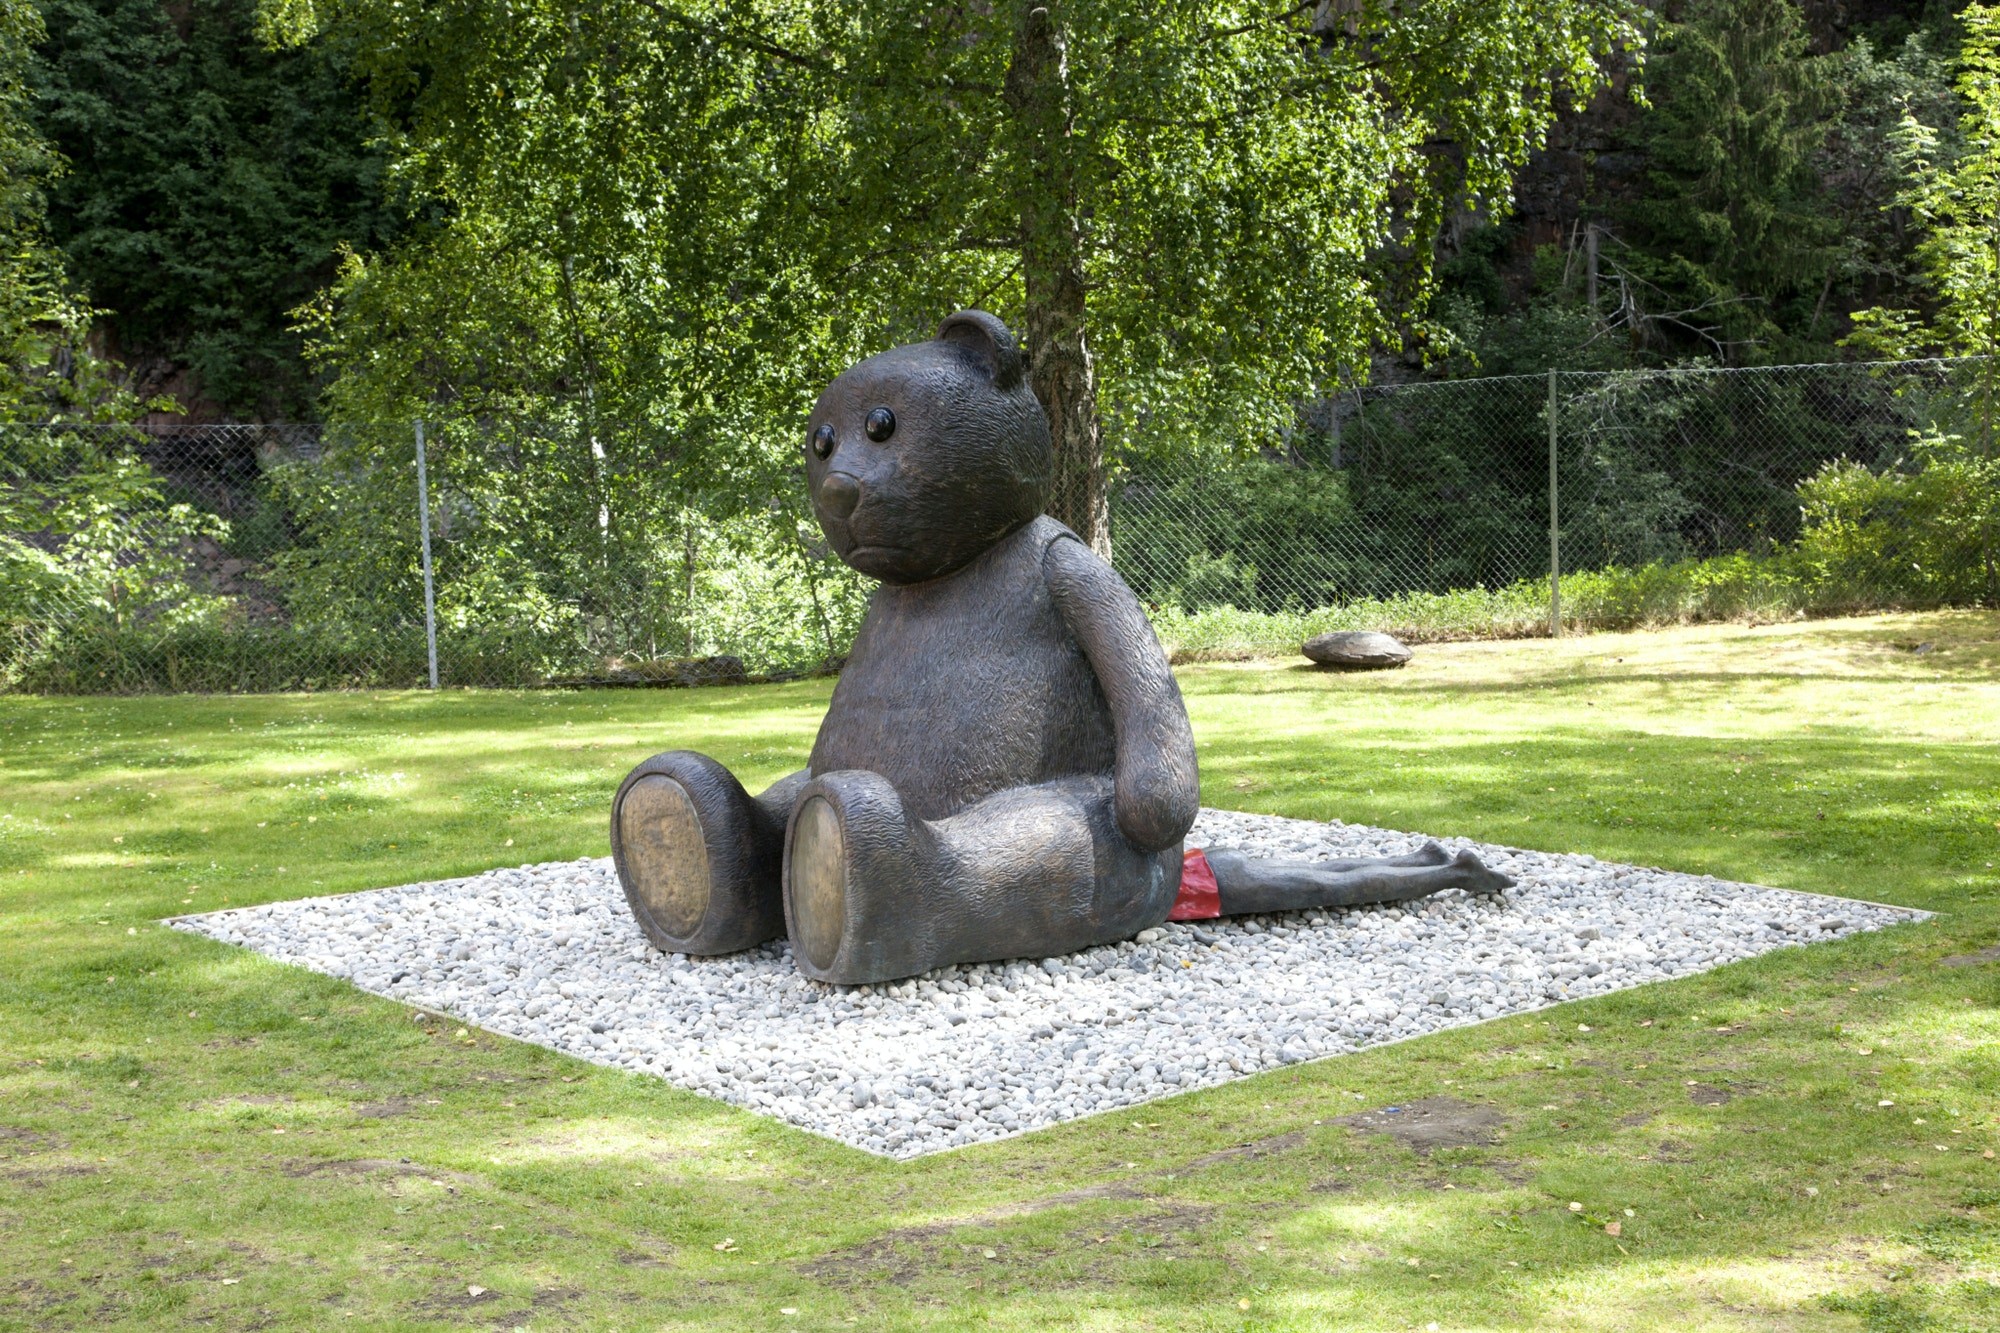 Sculpture, teddy bear, bronze.